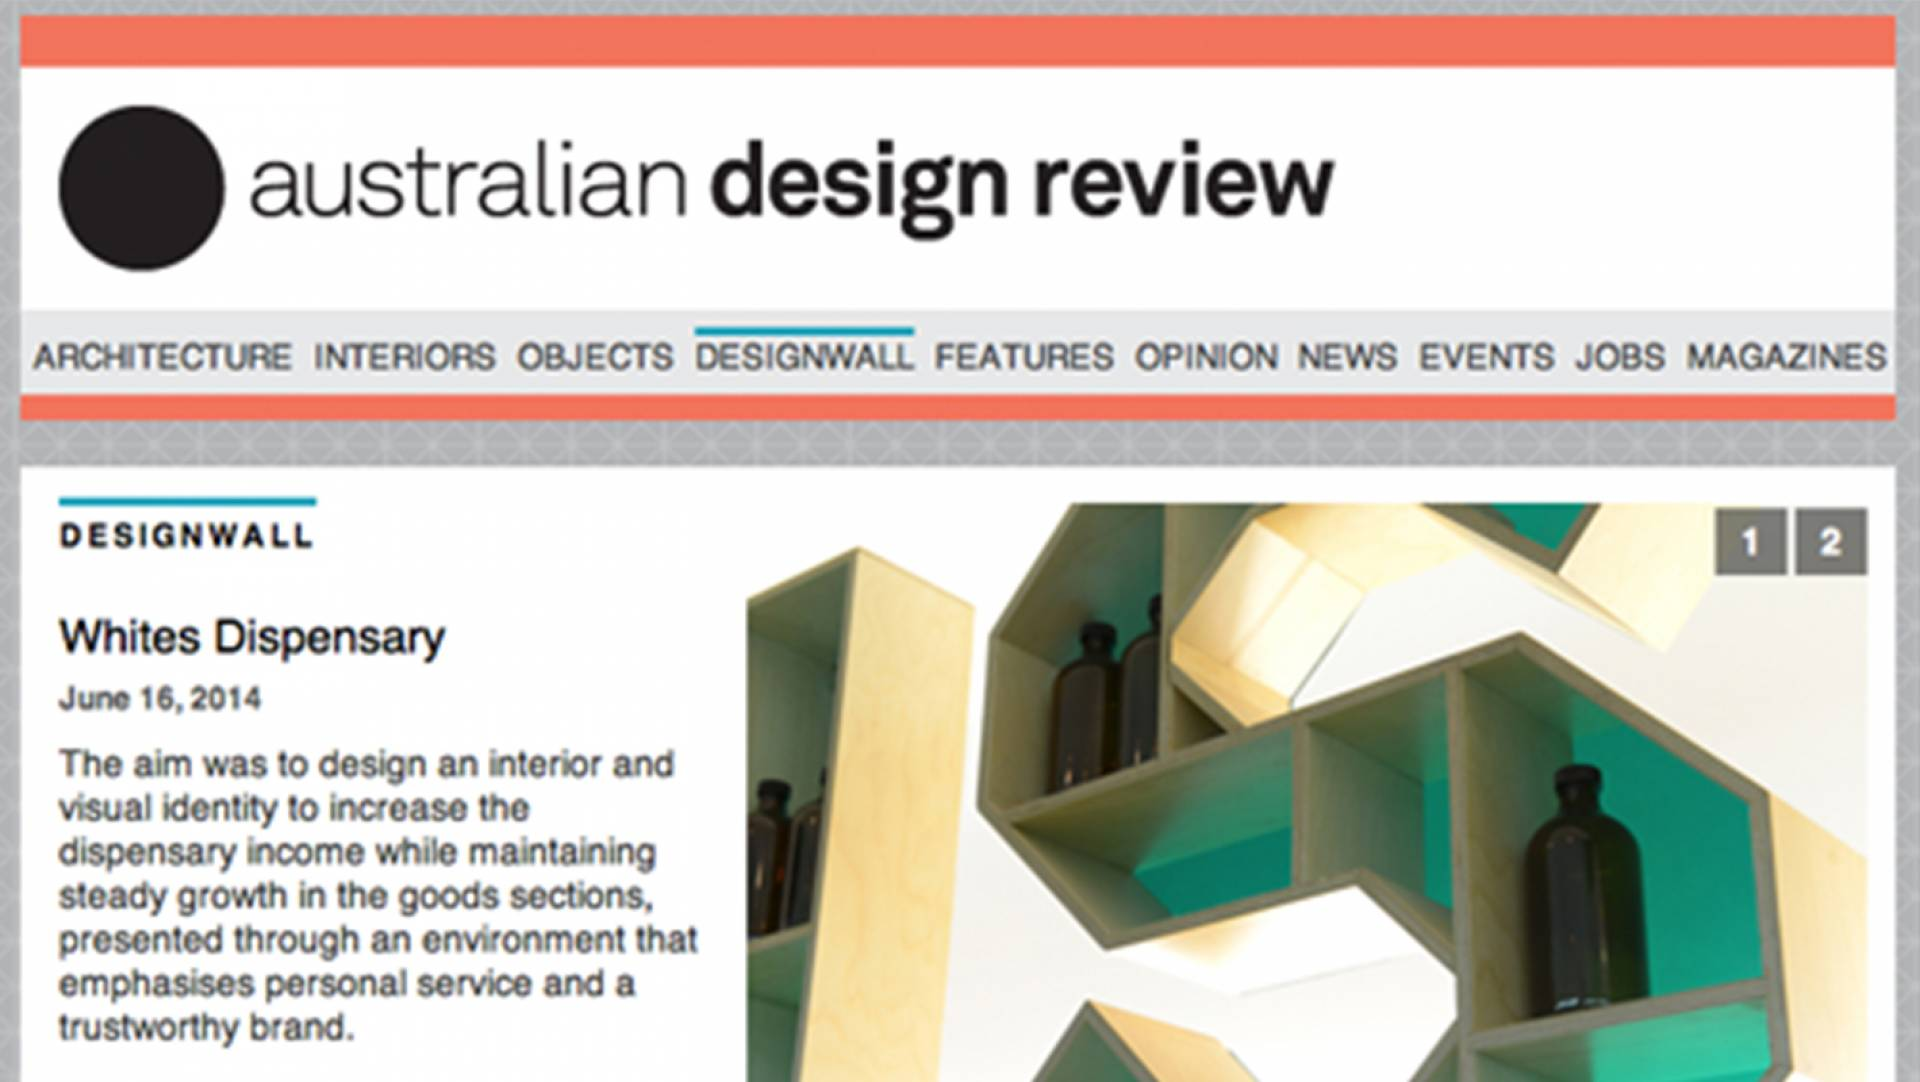 WHITES DISPESARY Australian Design Review